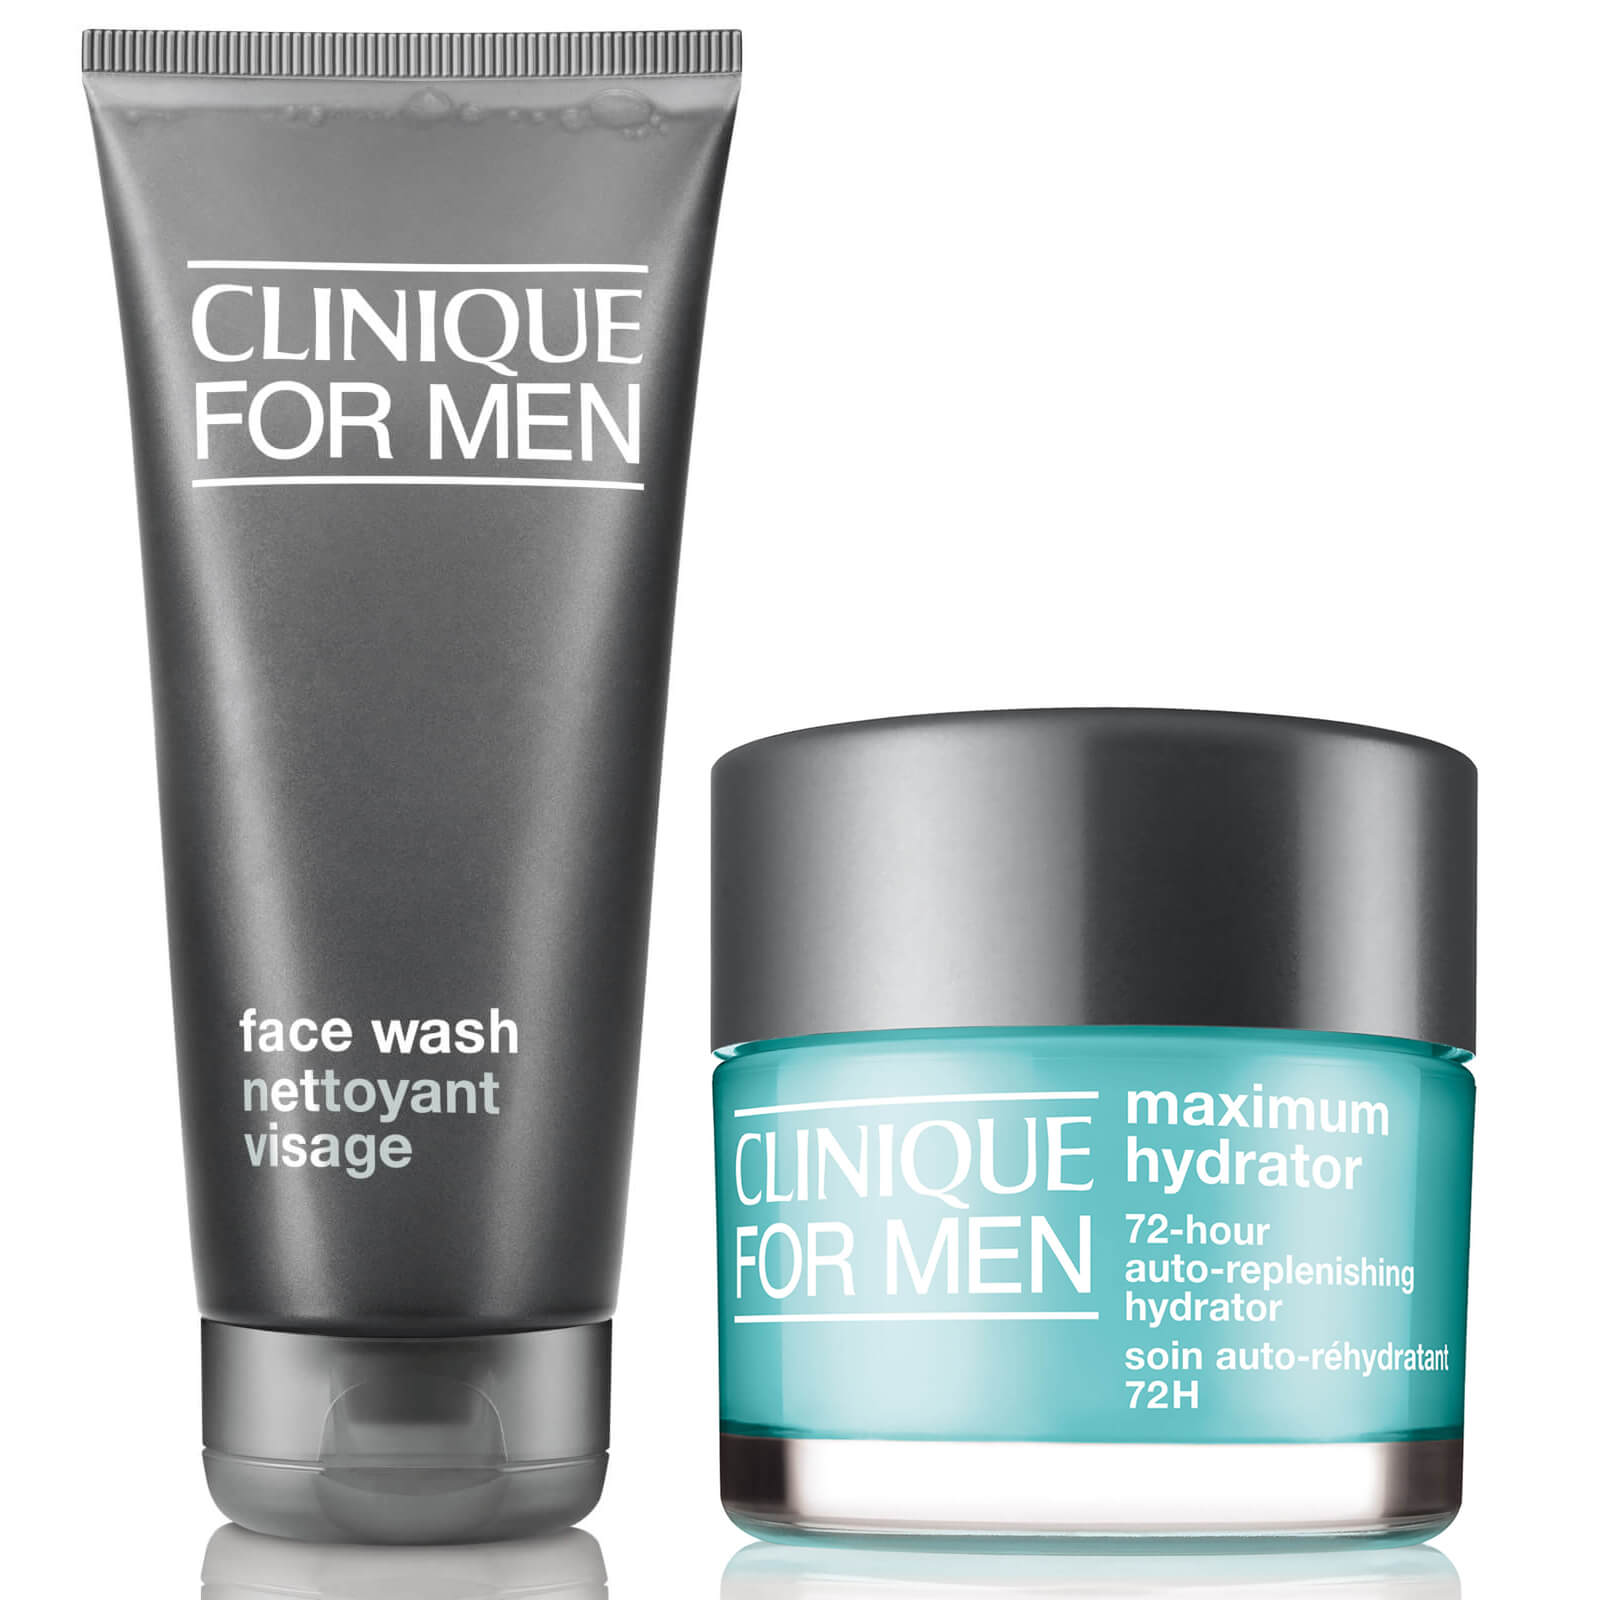 Clinique for Men Dehydrated Skin Bundle